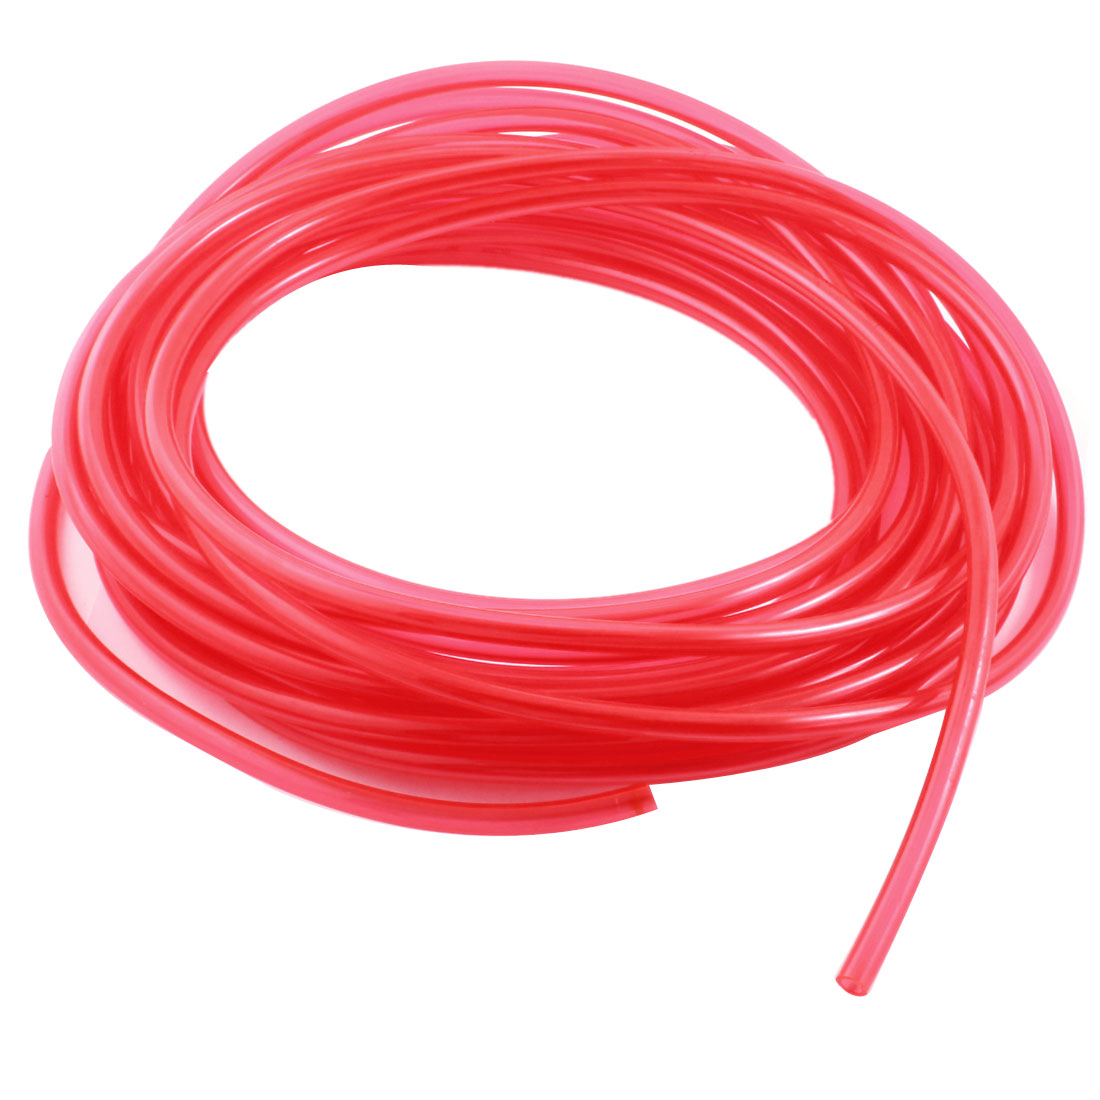 10Meters/33Ft Long 5x8mm Fuel Gas Petrol Diesel Flexible Hose Air PU Tubing Pneumatic Pipe Tube Clear Red